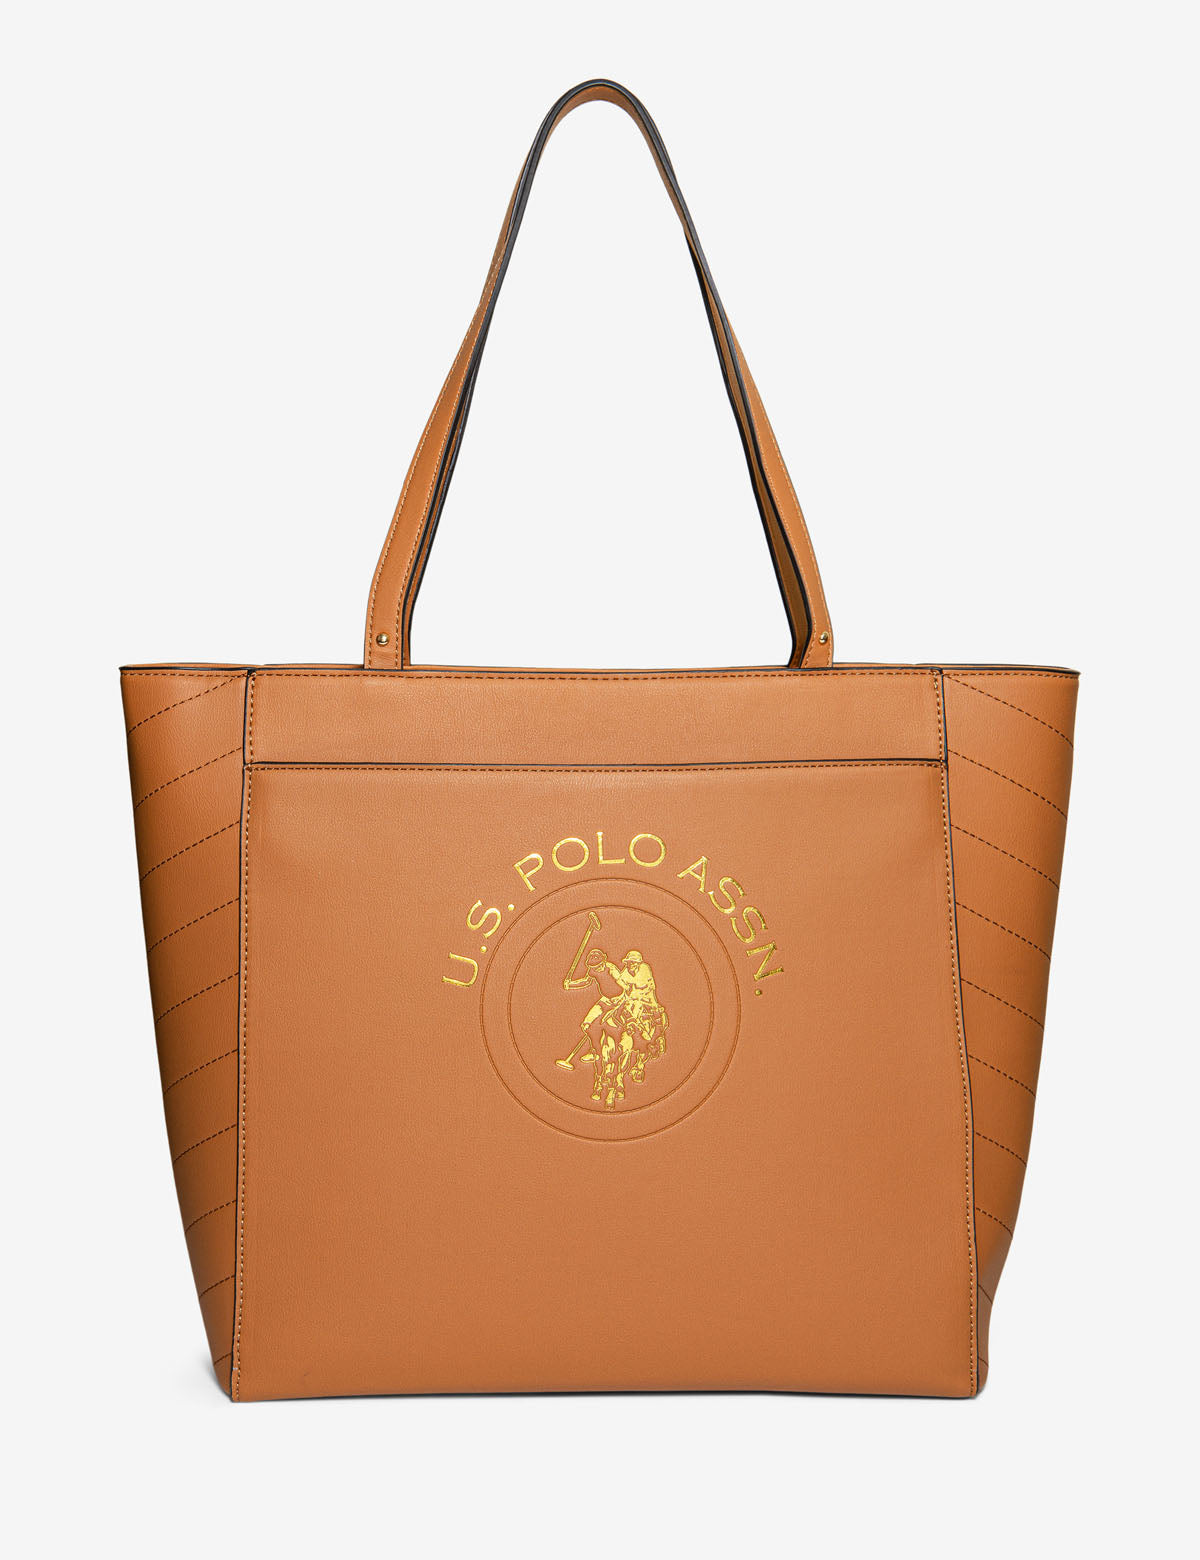 EMBOSSED LOGO TOTE BAG